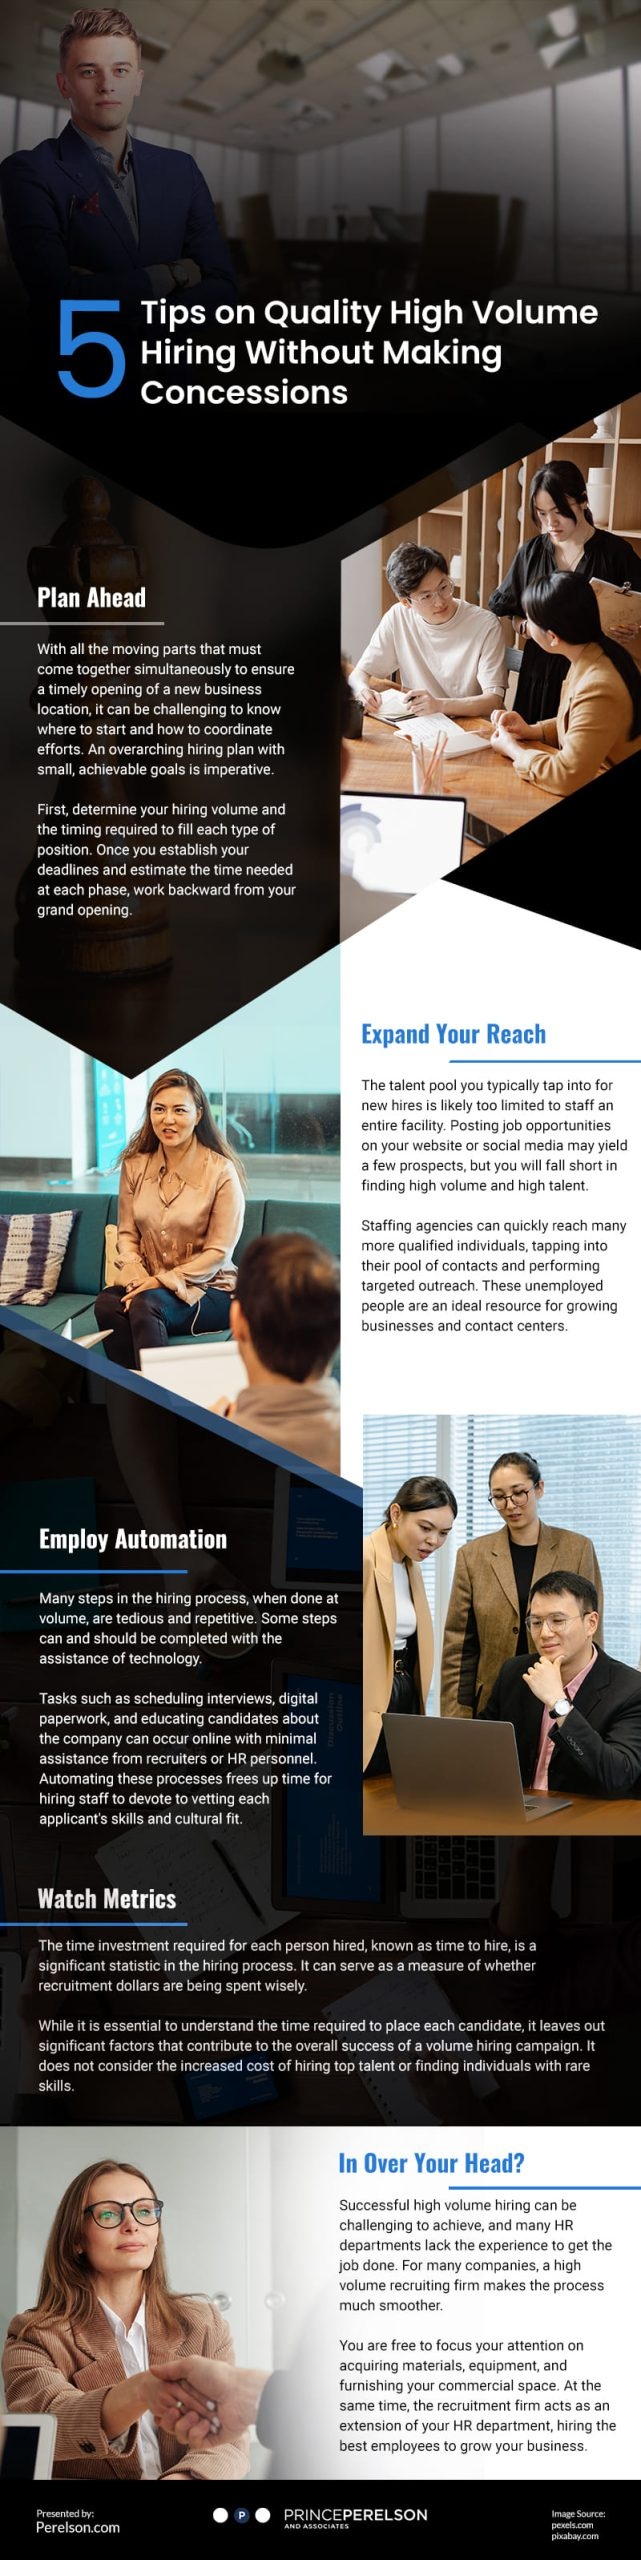 5 Tips on Quality High Volume Hiring Without Making Concessions Infographic